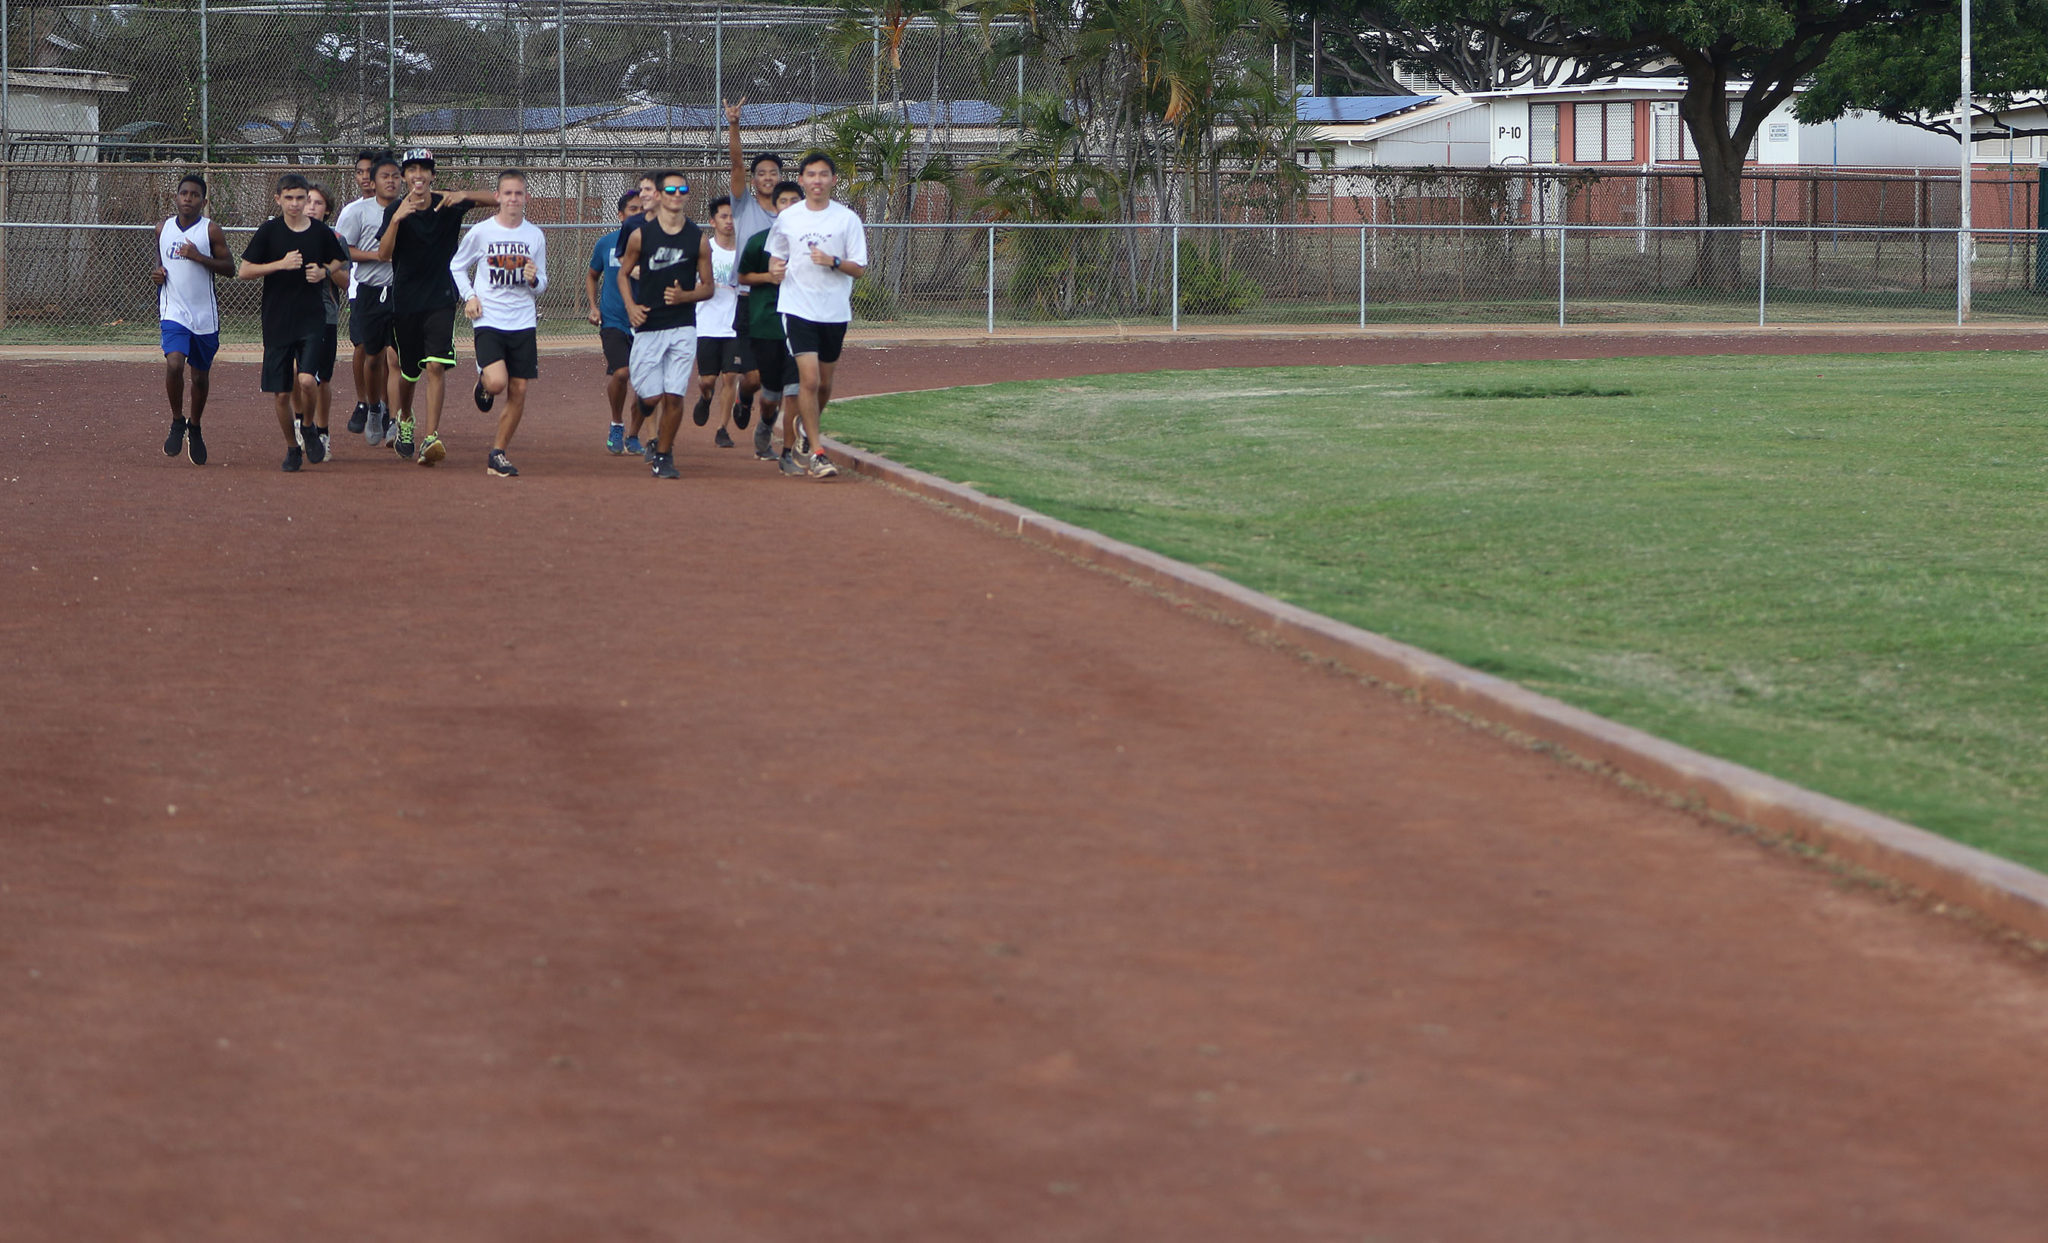 Campbell High School students run on their dirt track that encircles their grass football field.